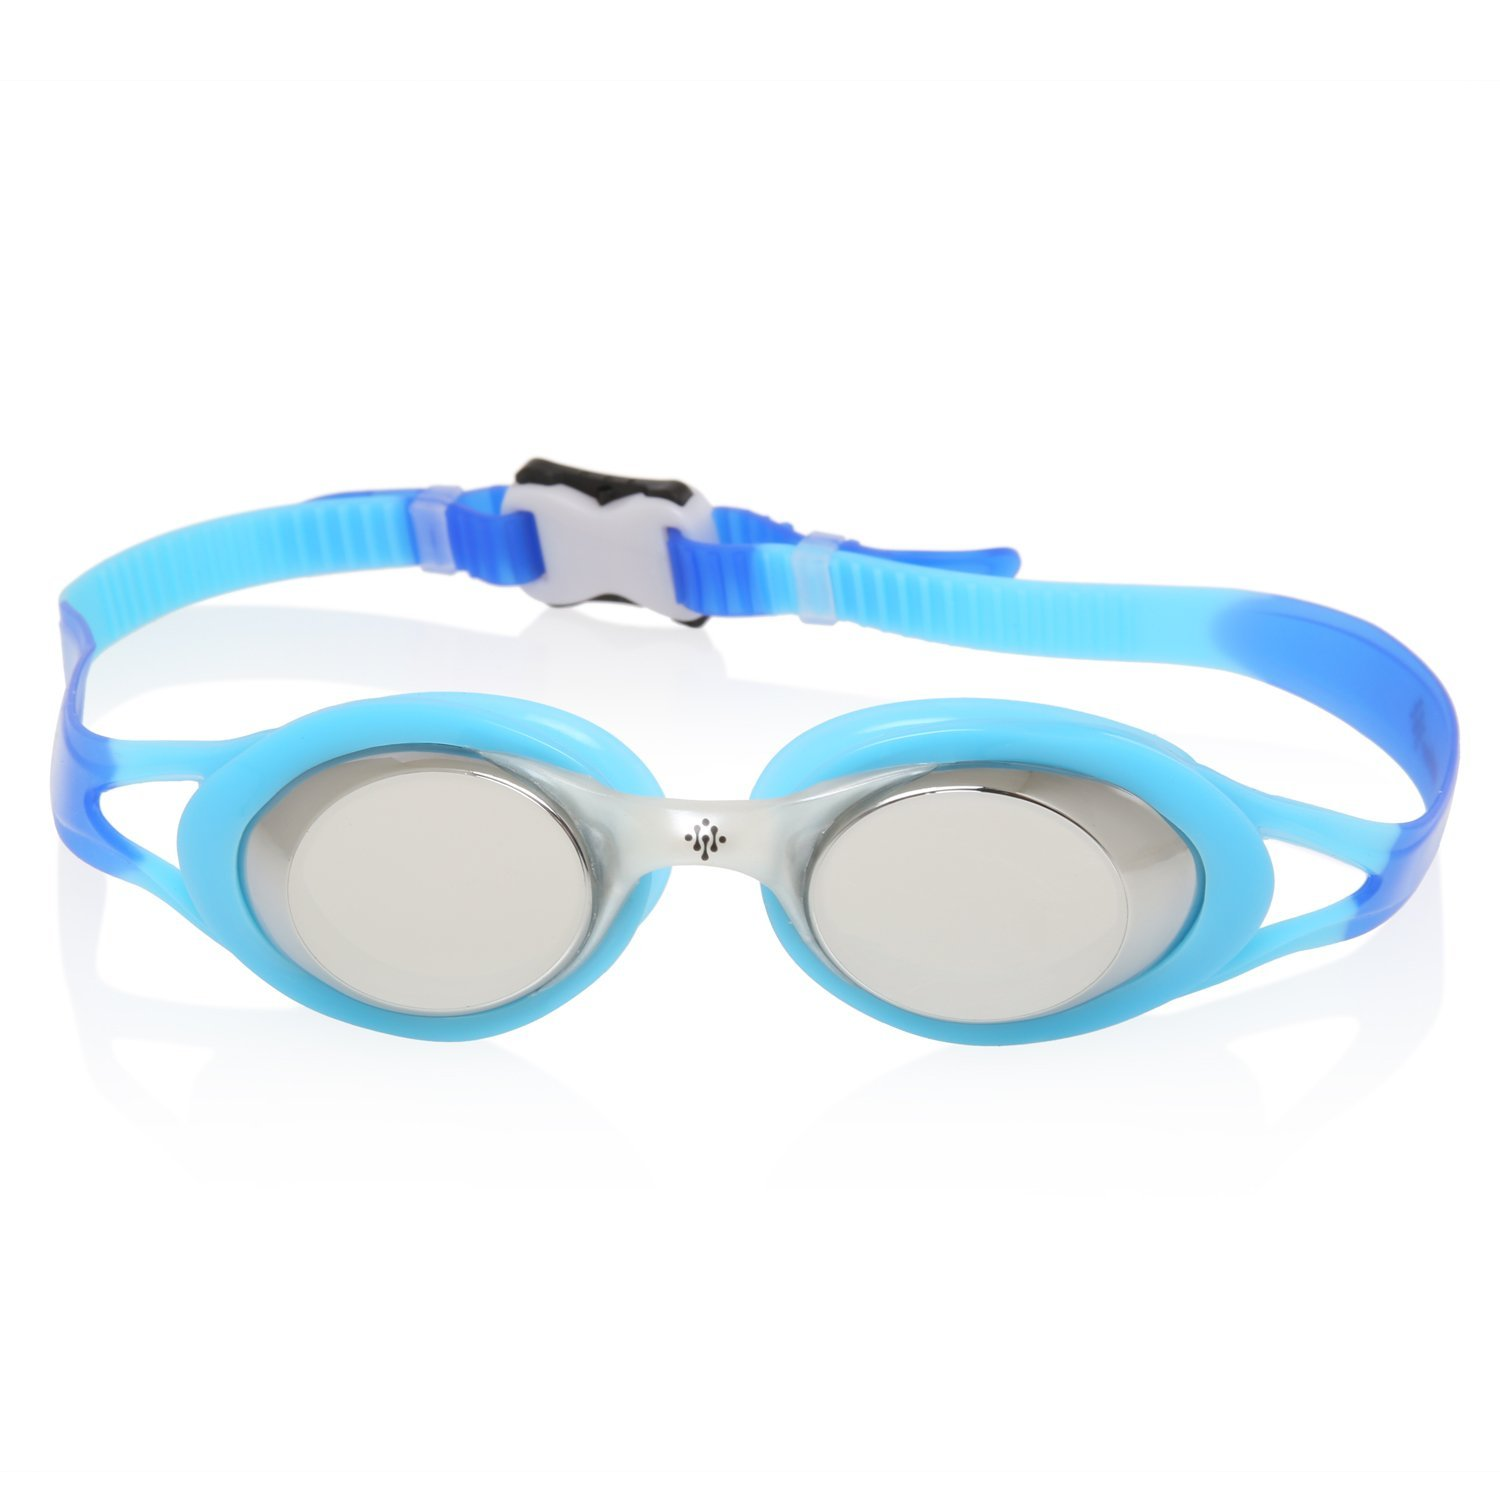 Mirrored Swim Goggles Water Sports UV Protection, Anti-Fog Swimming by Ivation